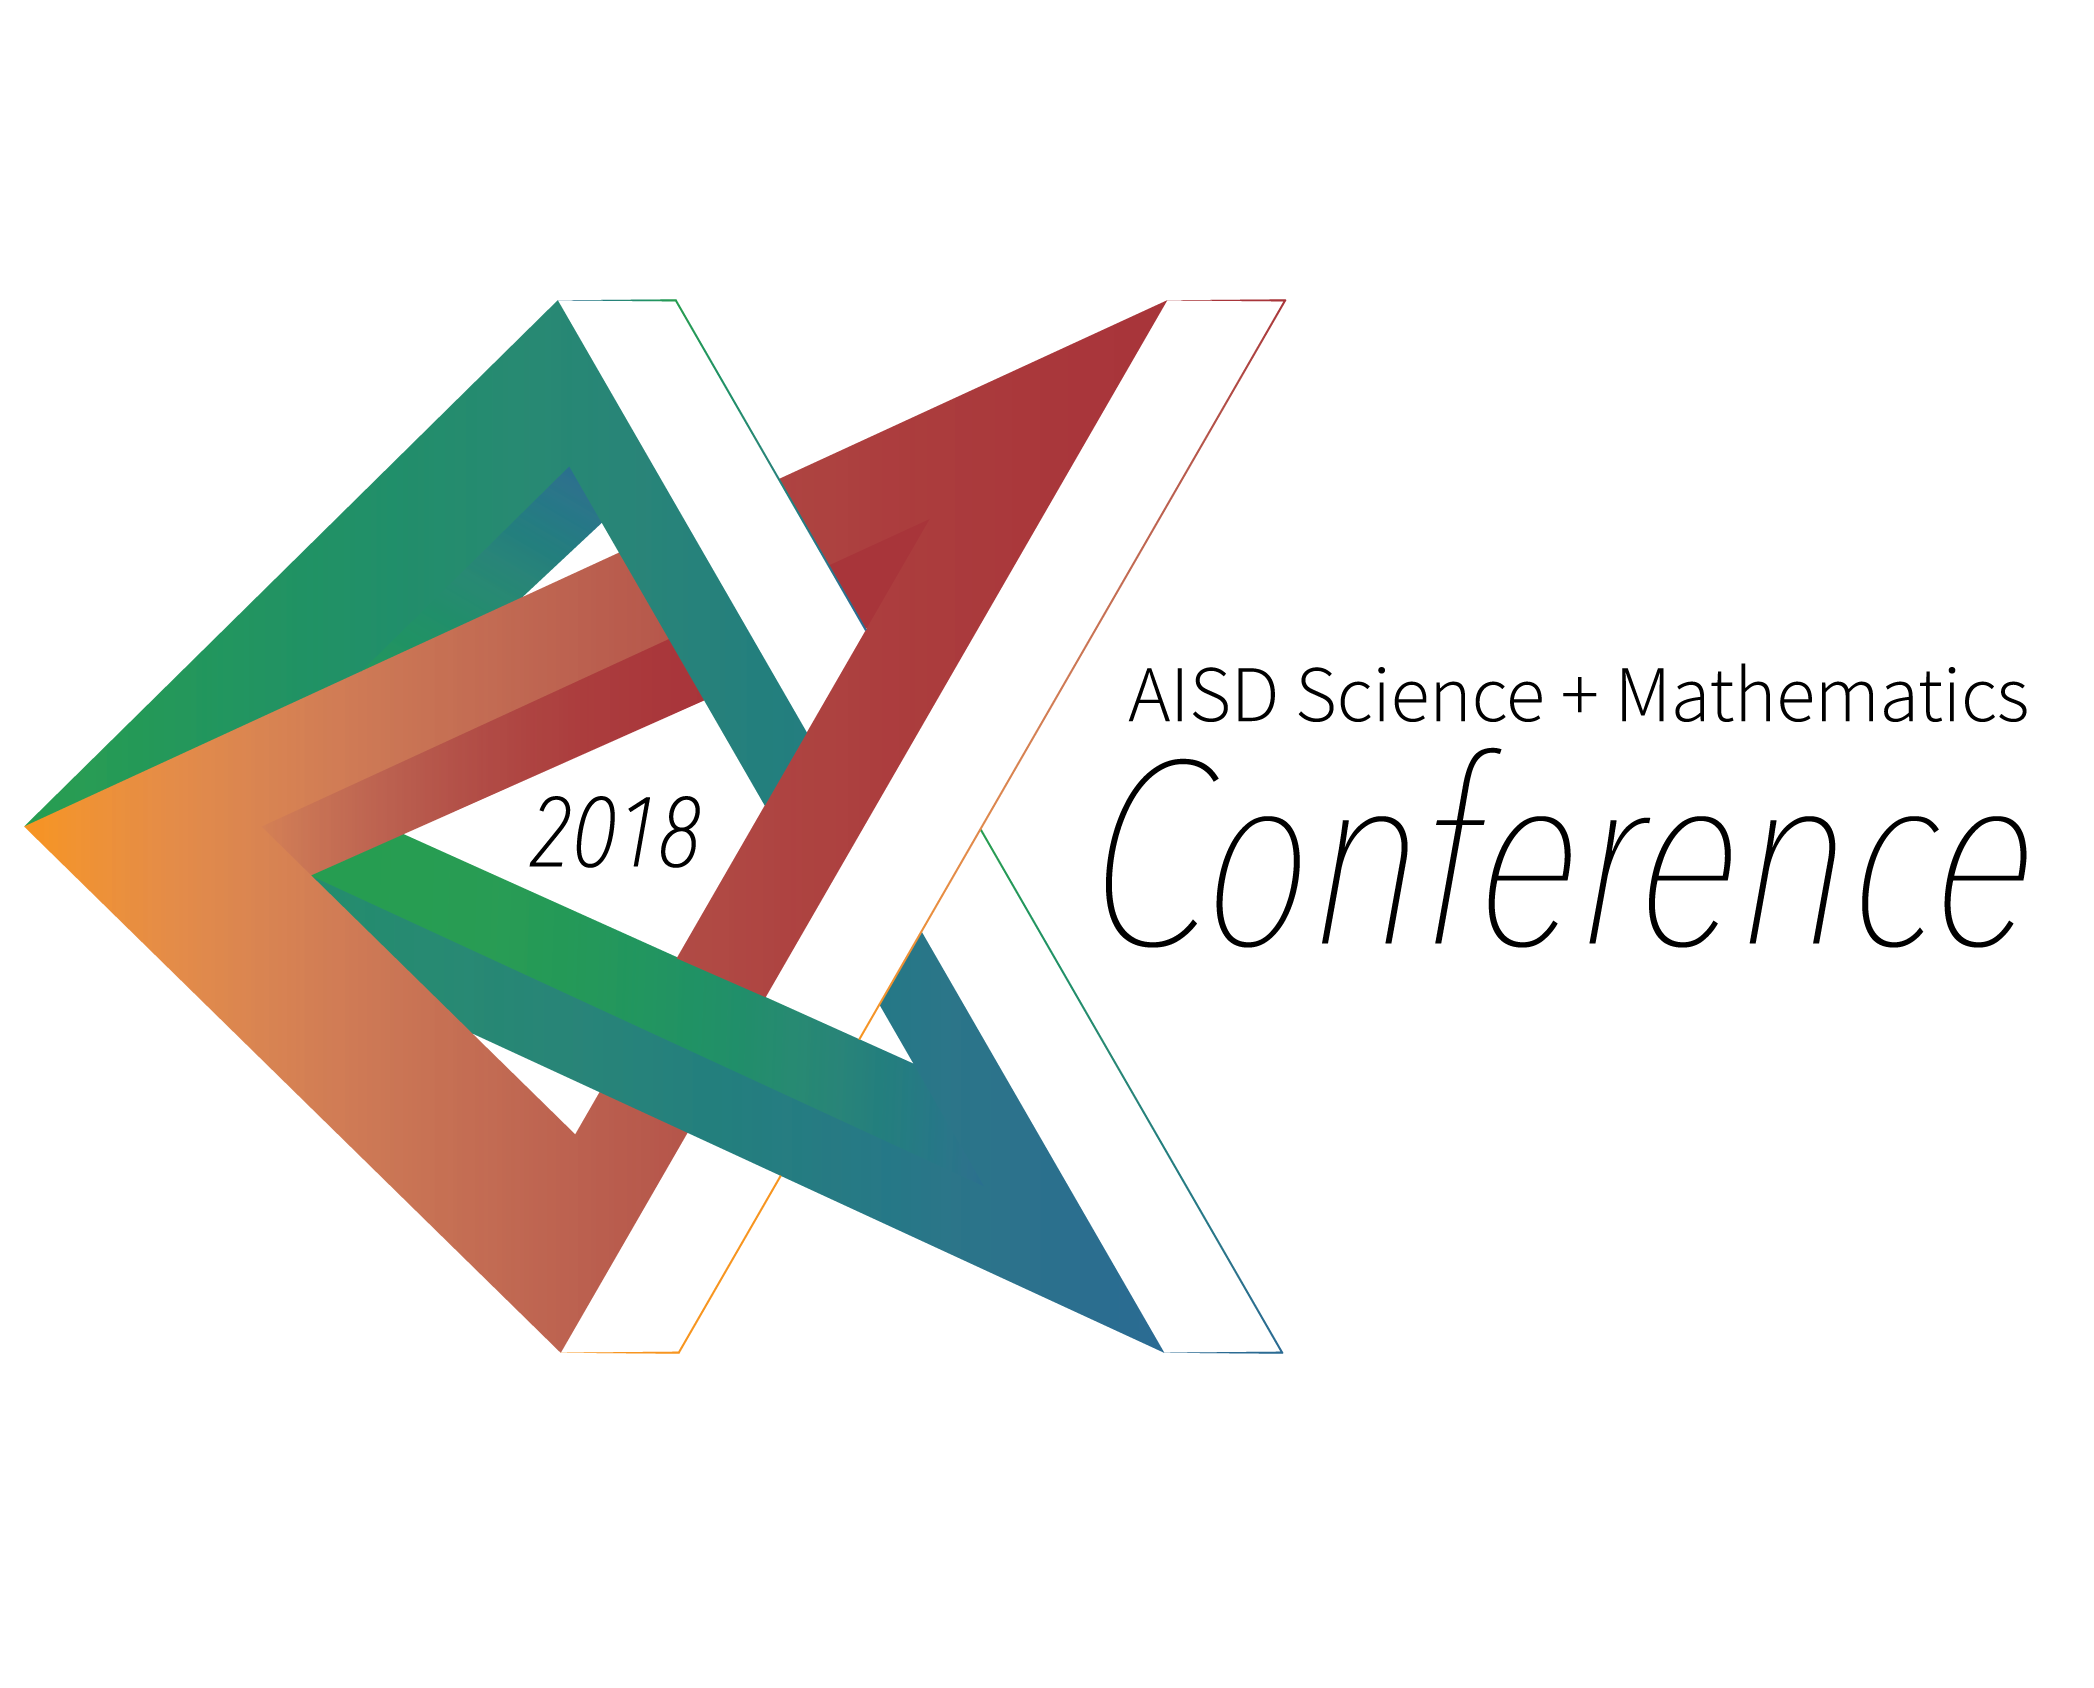 AISD Science + Mathematics X Conference